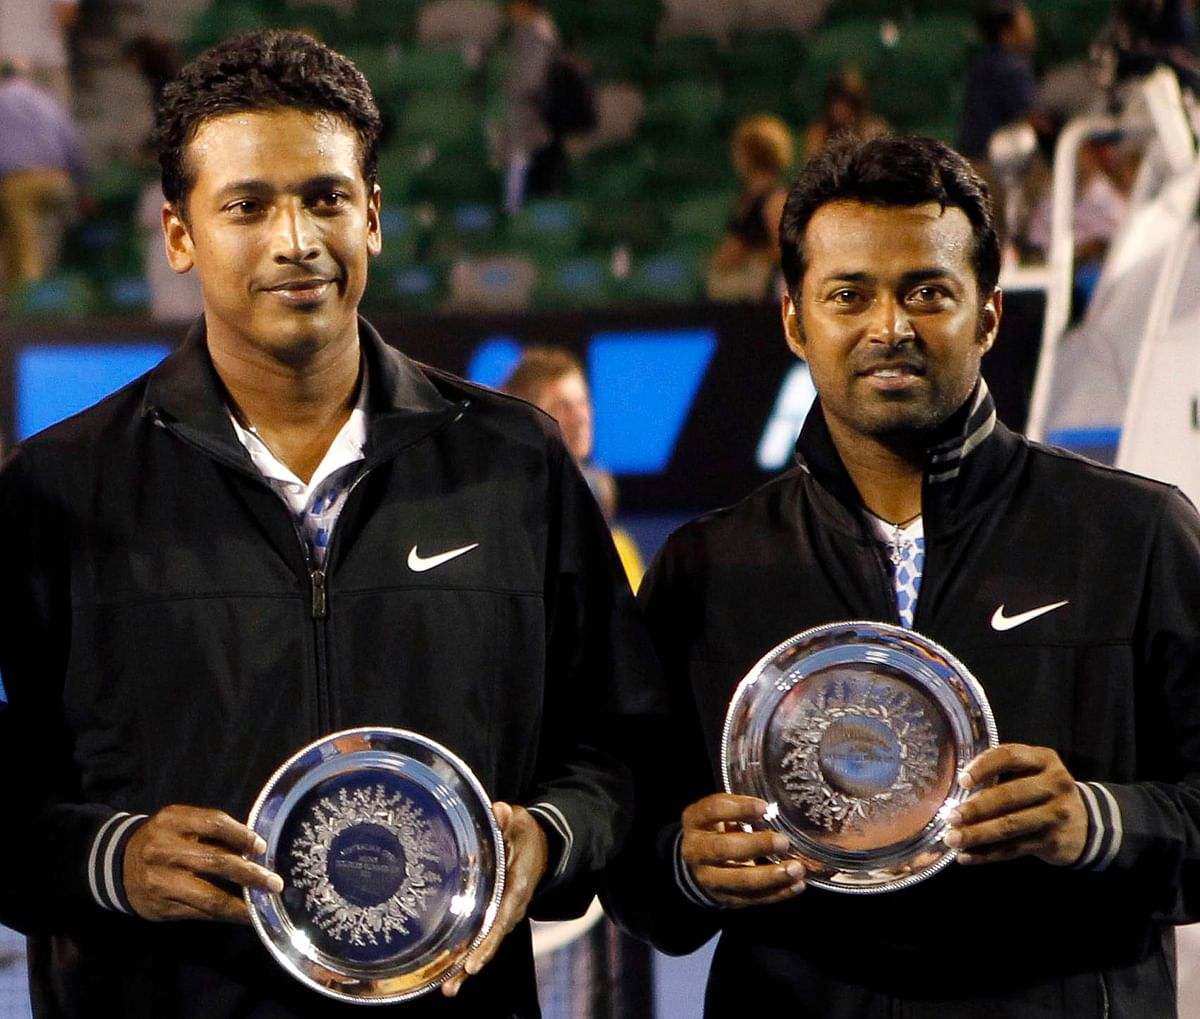 Mahesh Bhupathi and Leander Paes (R) of India pose with their trophies after their men's doubles final match against Bob Bryan and Mike Bryan of the U.S. at the Australian Open tennis tournament in Melbourne. (Photo: Reuters)